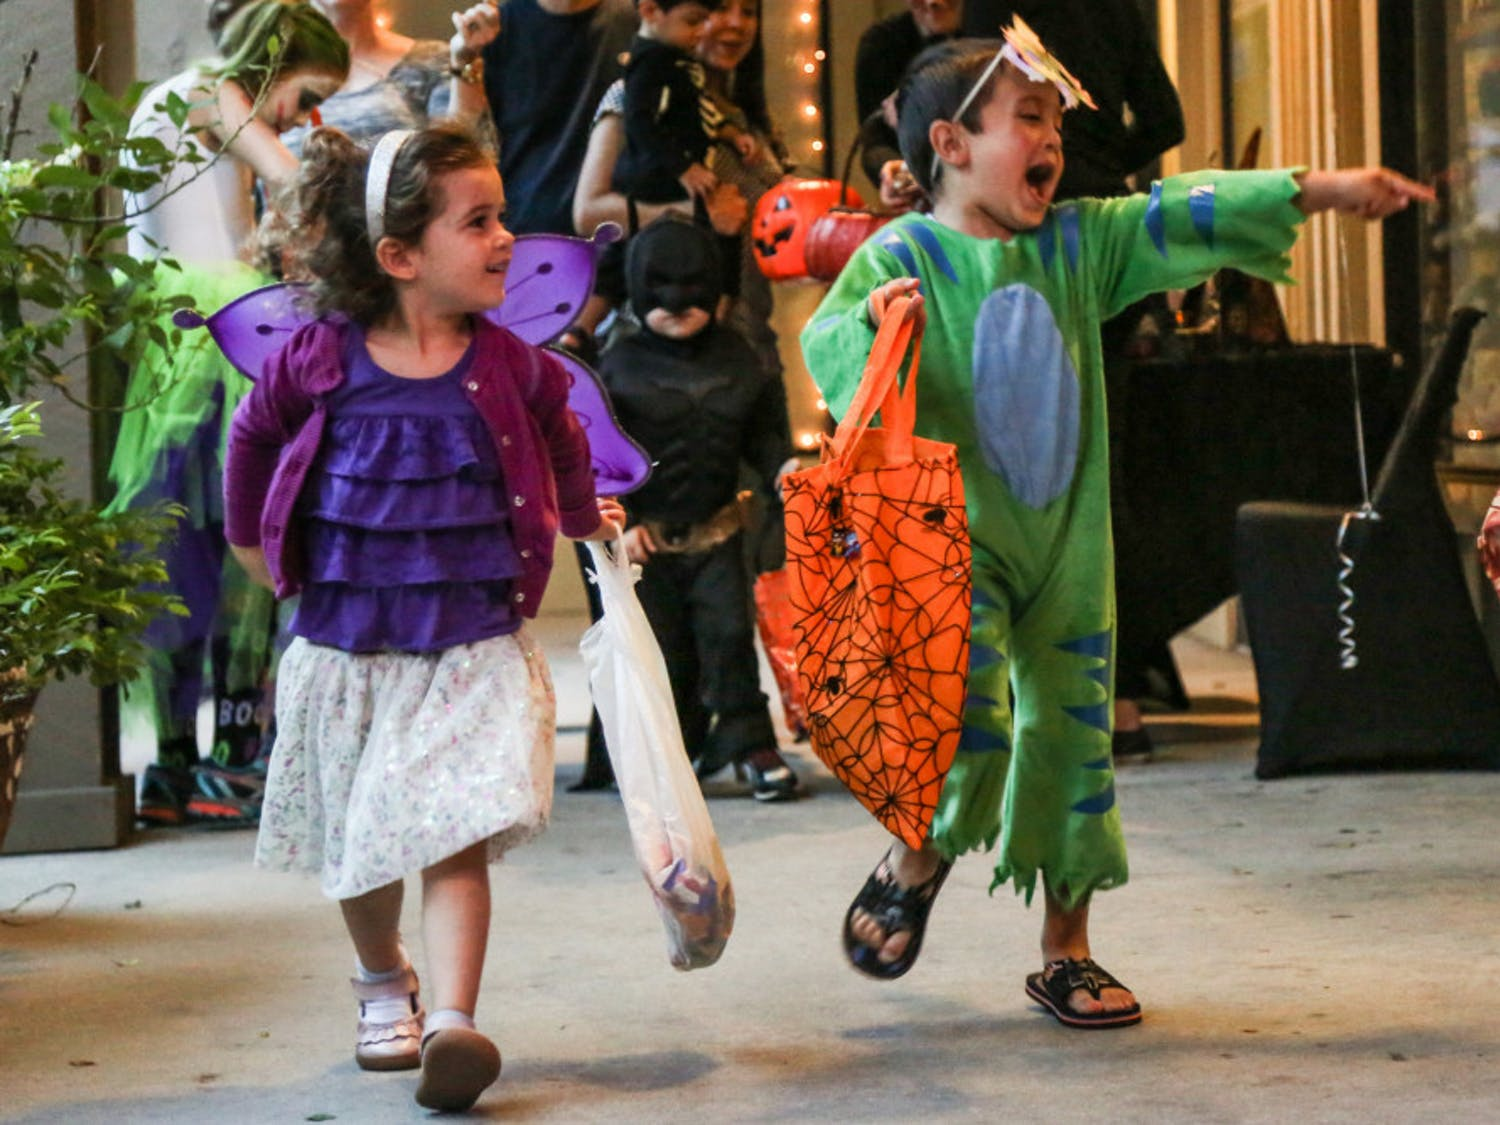 From left: 4-year-old Lilla Hall, dressed like a fairy, and 4-year-old Omar Saab, who wore a dinosaur costume, walked while they trick-or-treated at Flying Biscuit Cafe on 2441 NW 43rd St. on Thursday evening.